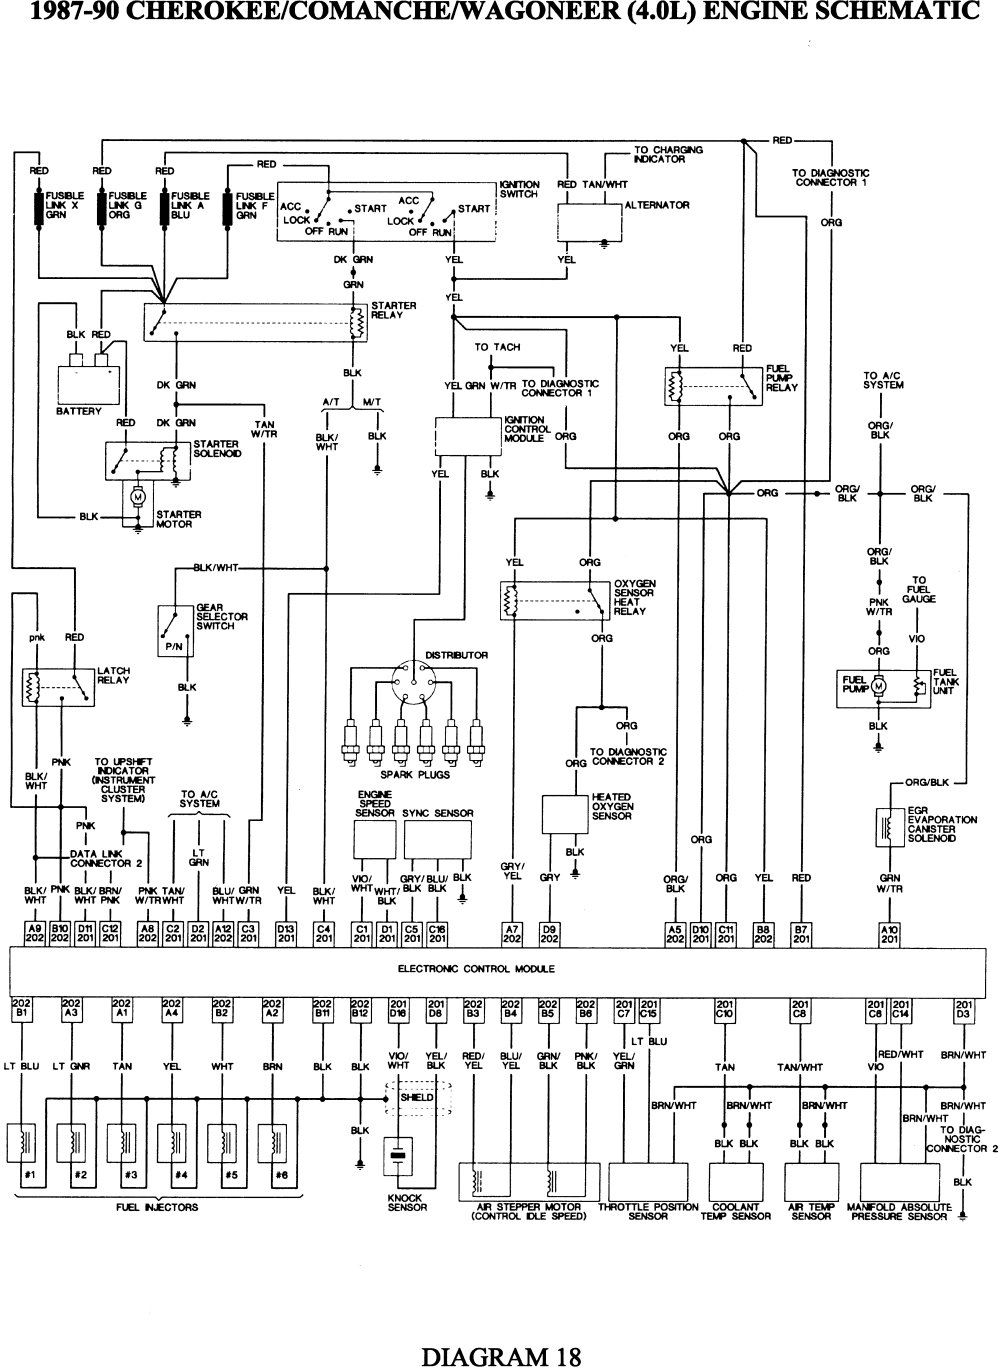 hight resolution of 1997 jeep wrangler alternator diagram on jeep wrangler electrical mix 1997 jeep wrangler electrical diagram wiring